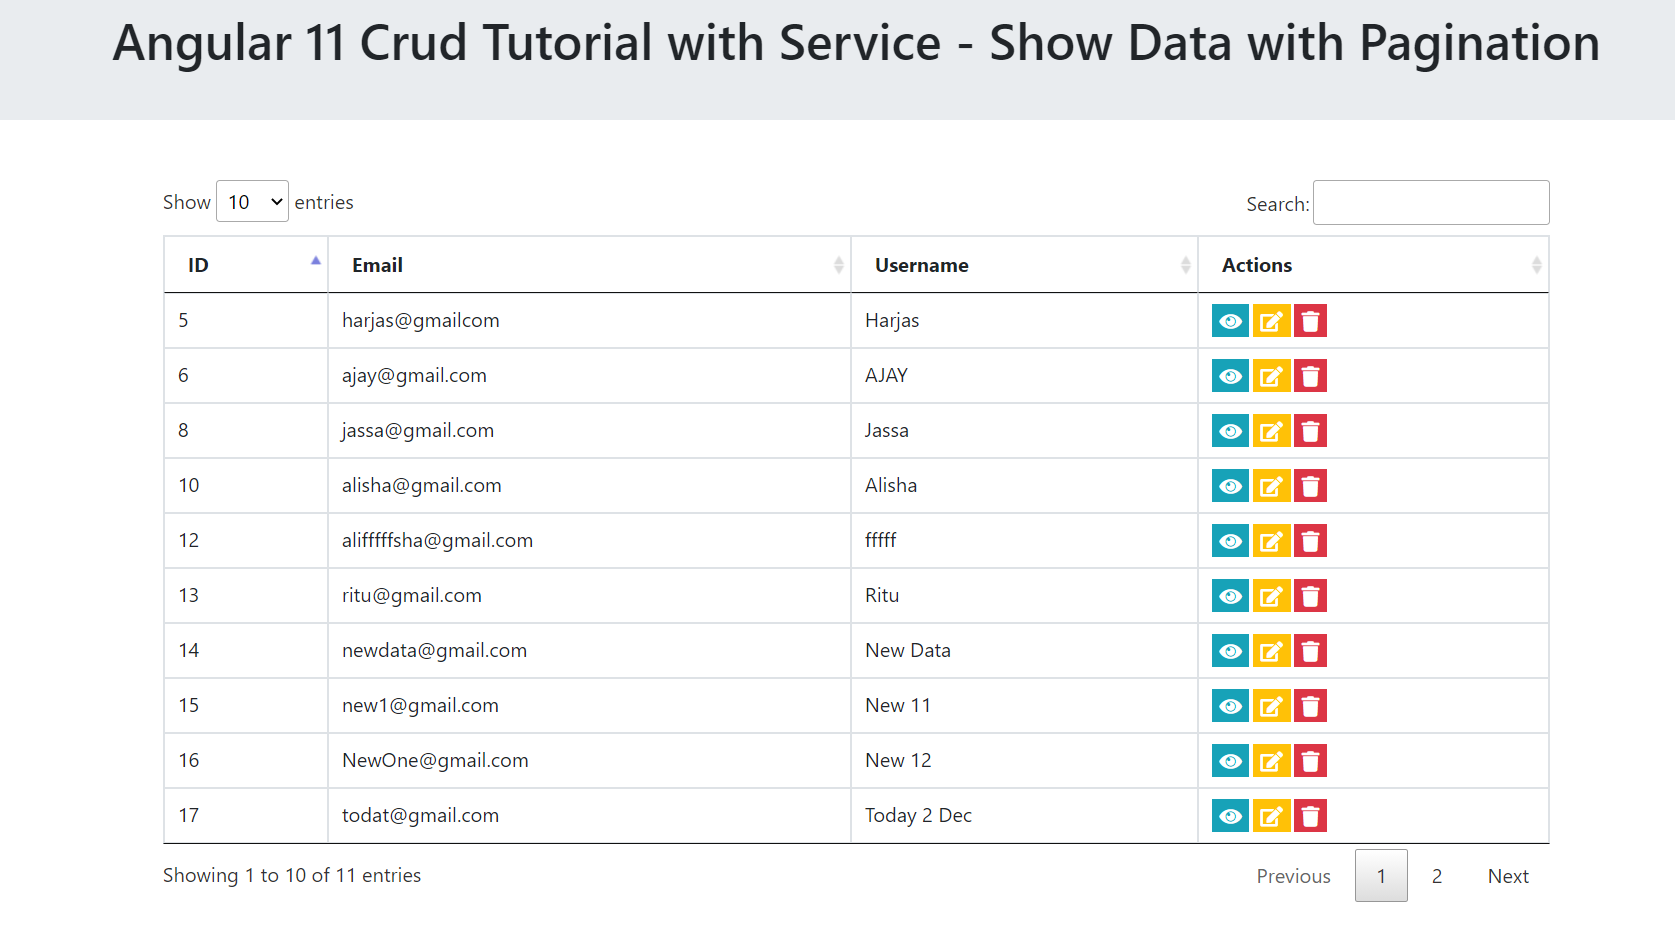 Angular 11 Crud Tutorial with Service - Show Data with Pagination